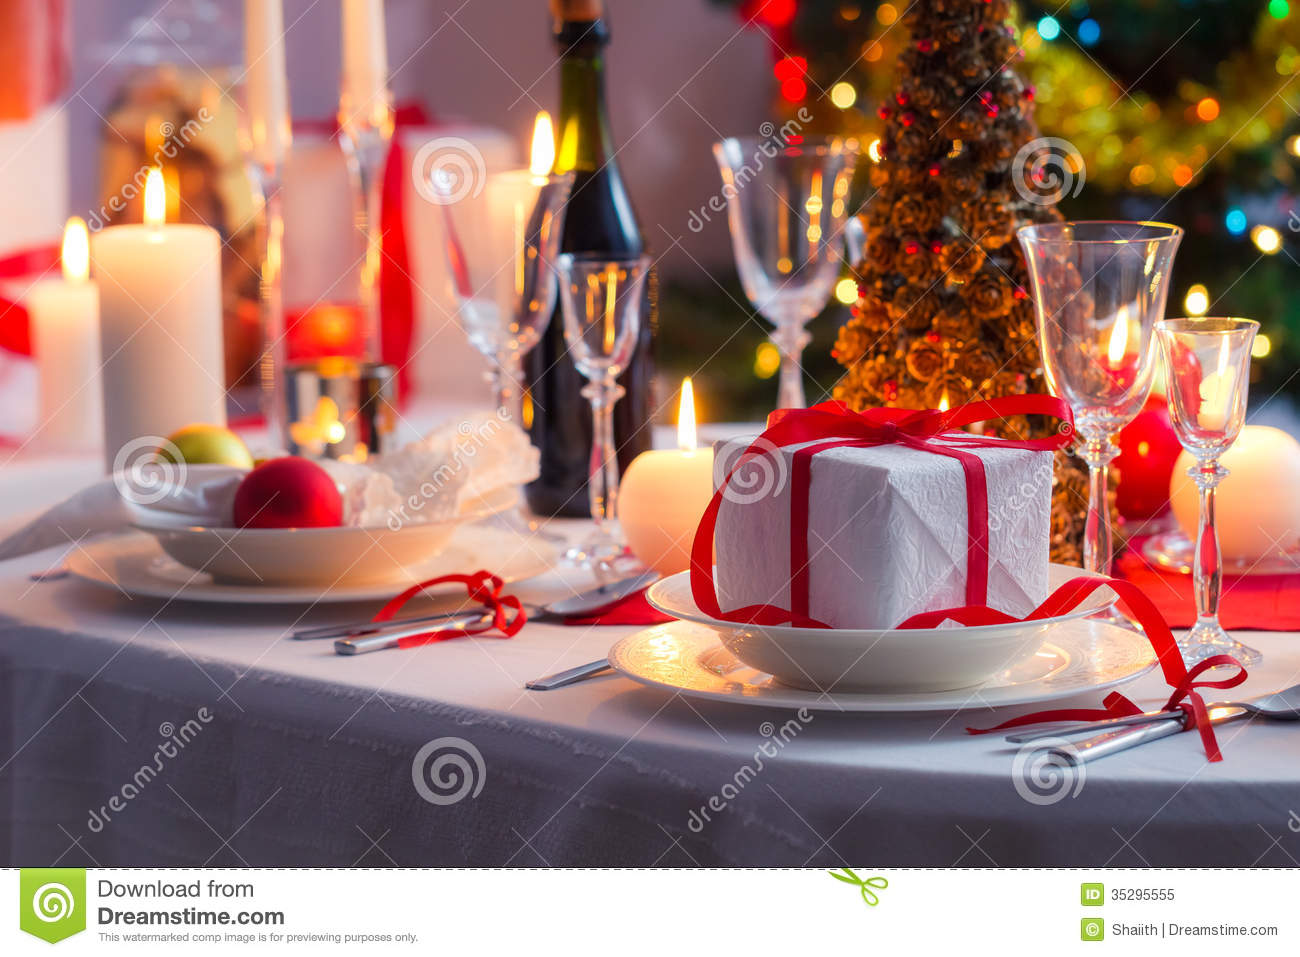 We Wish You A Merry Christmas Stock Image - Image of light, merry ...